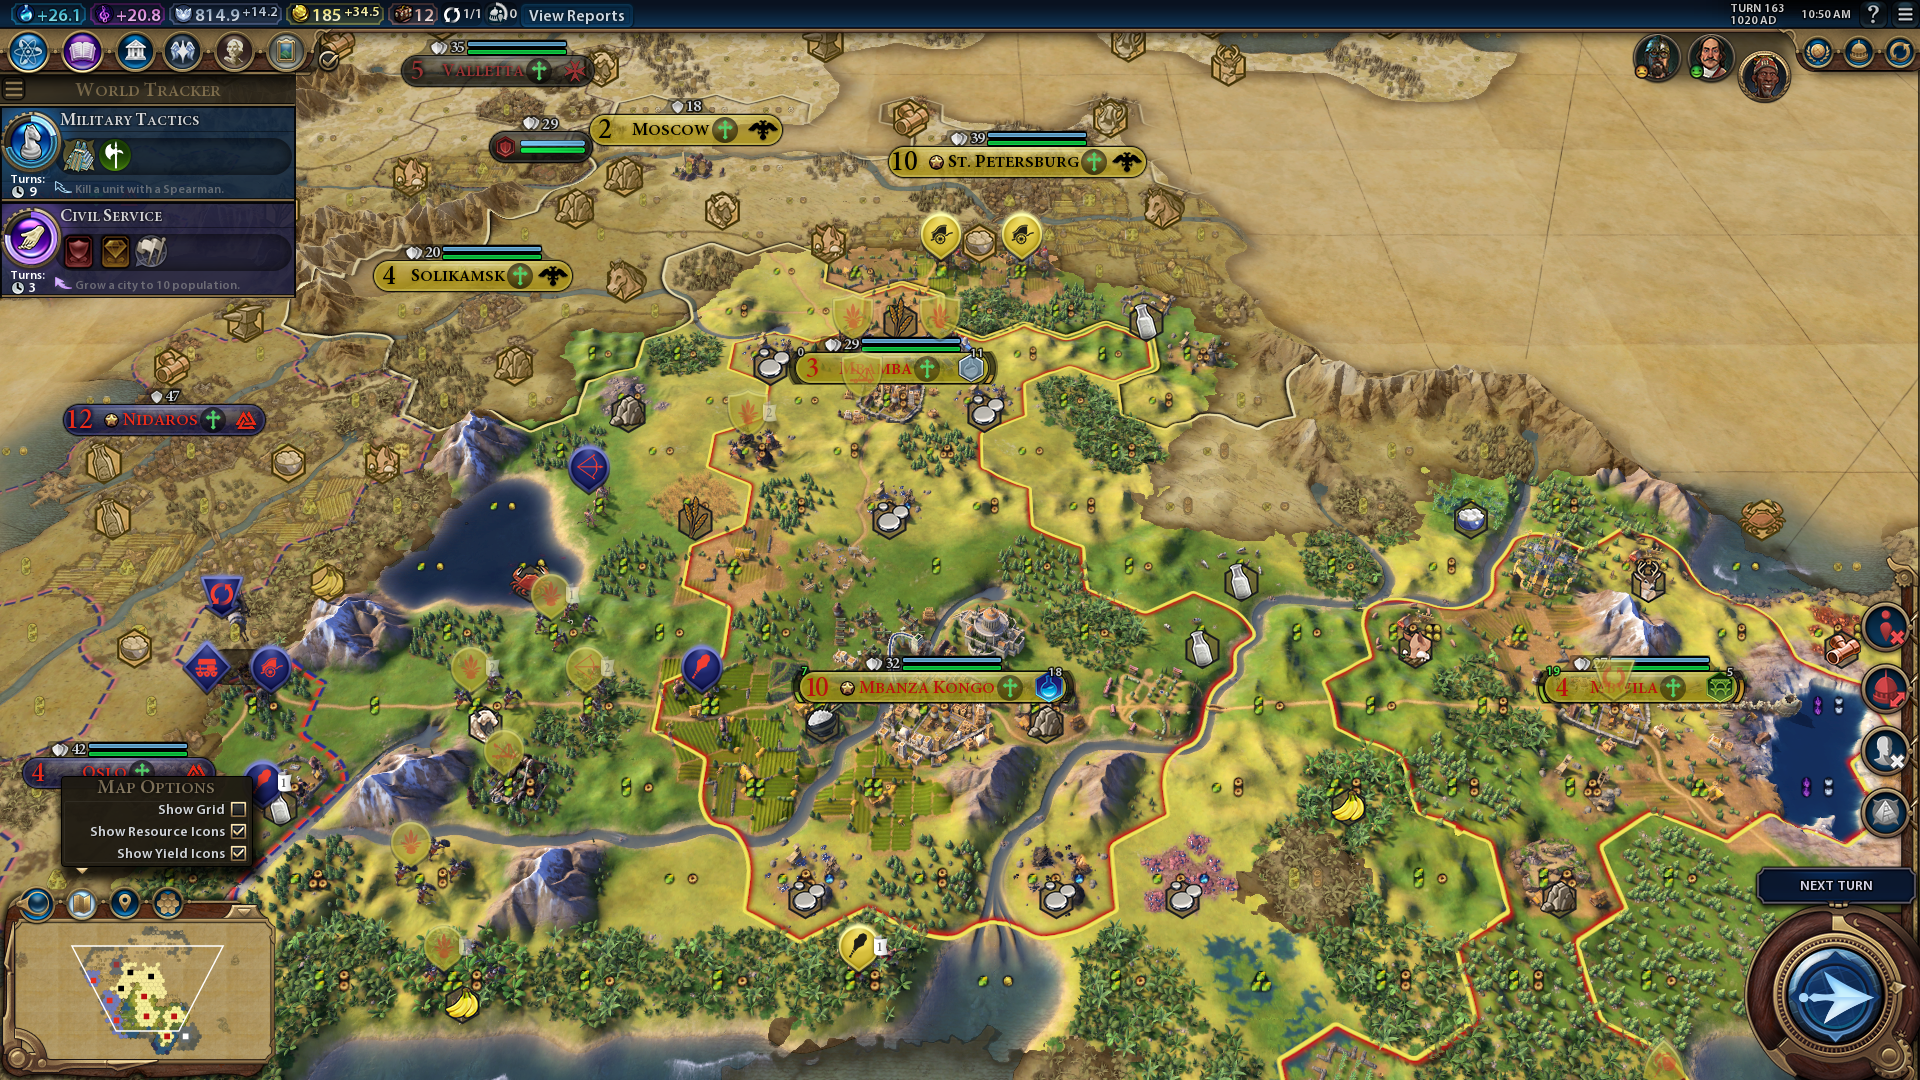 6 mercury in my first 2 cities civilizationbeyondearth gaming 6 mercury in my first 2 cities civilizationbeyondearth gaming civilization games gumiabroncs Images